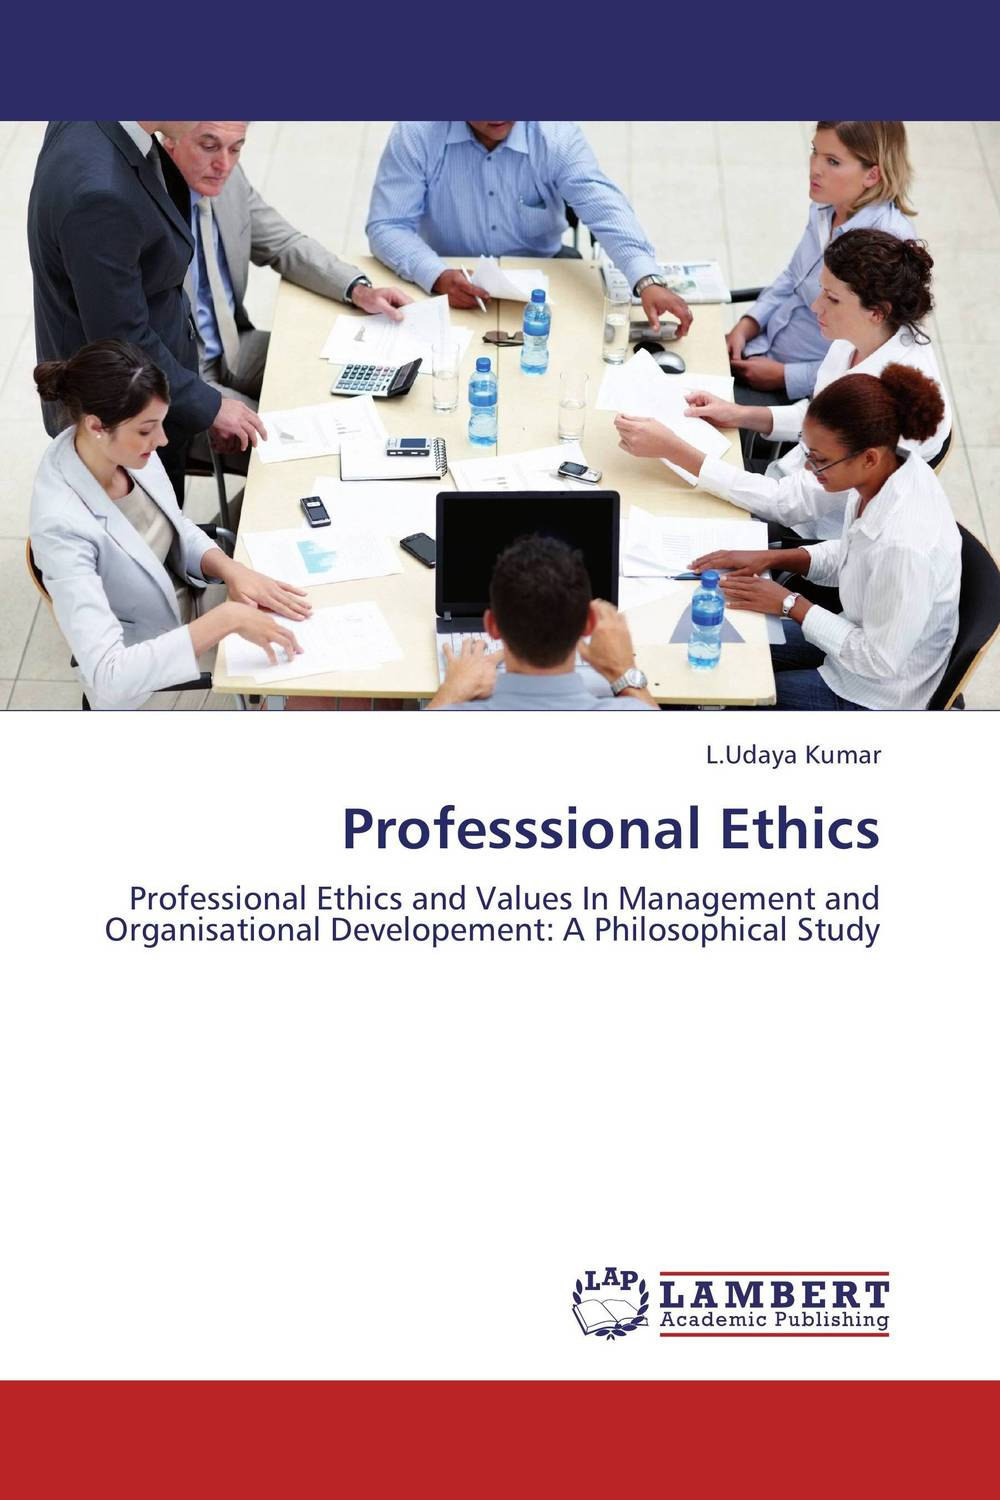 Professsional Ethics the application of global ethics to solve local improprieties